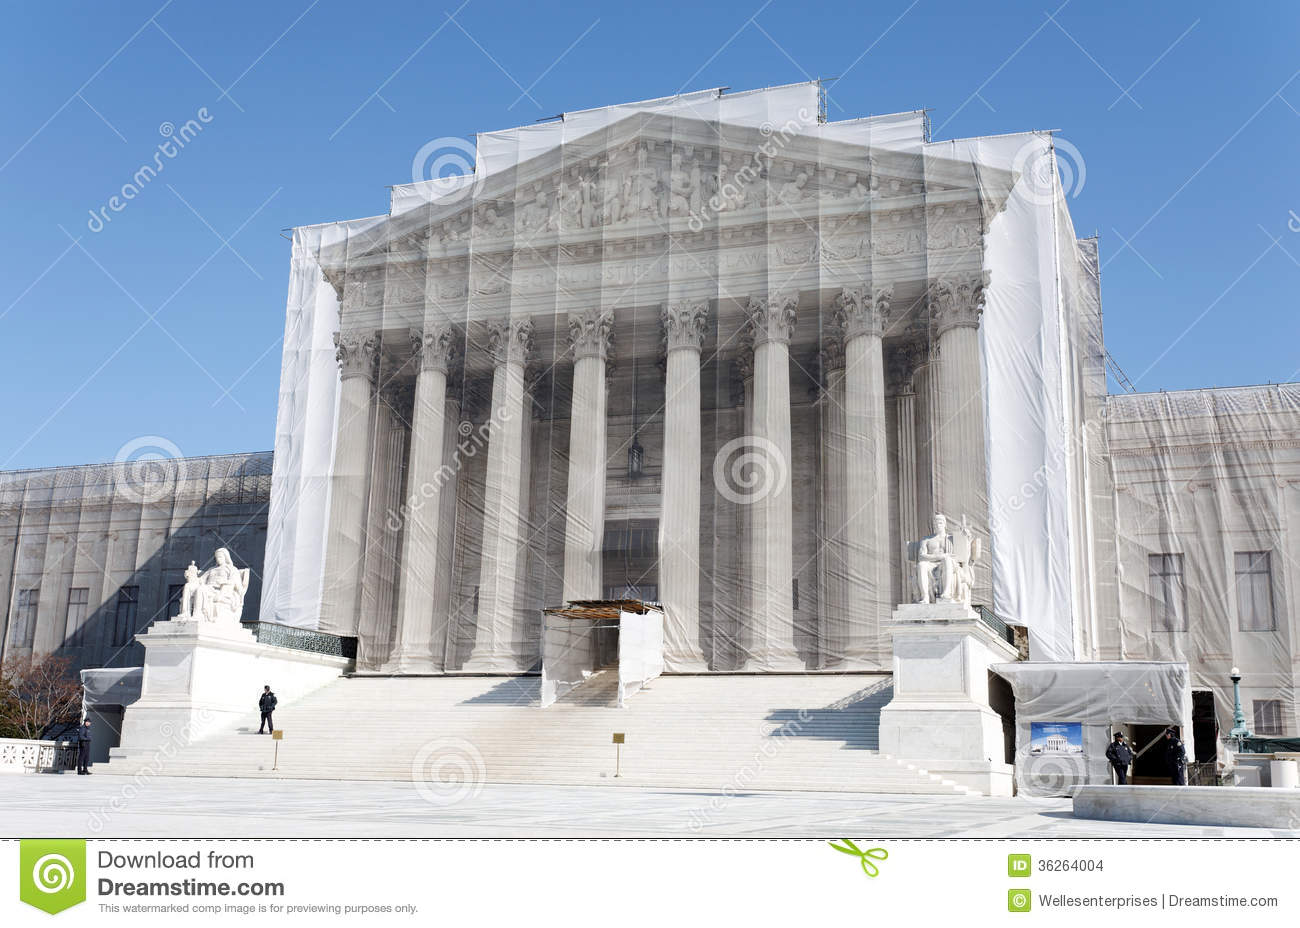 List of courts of the United States